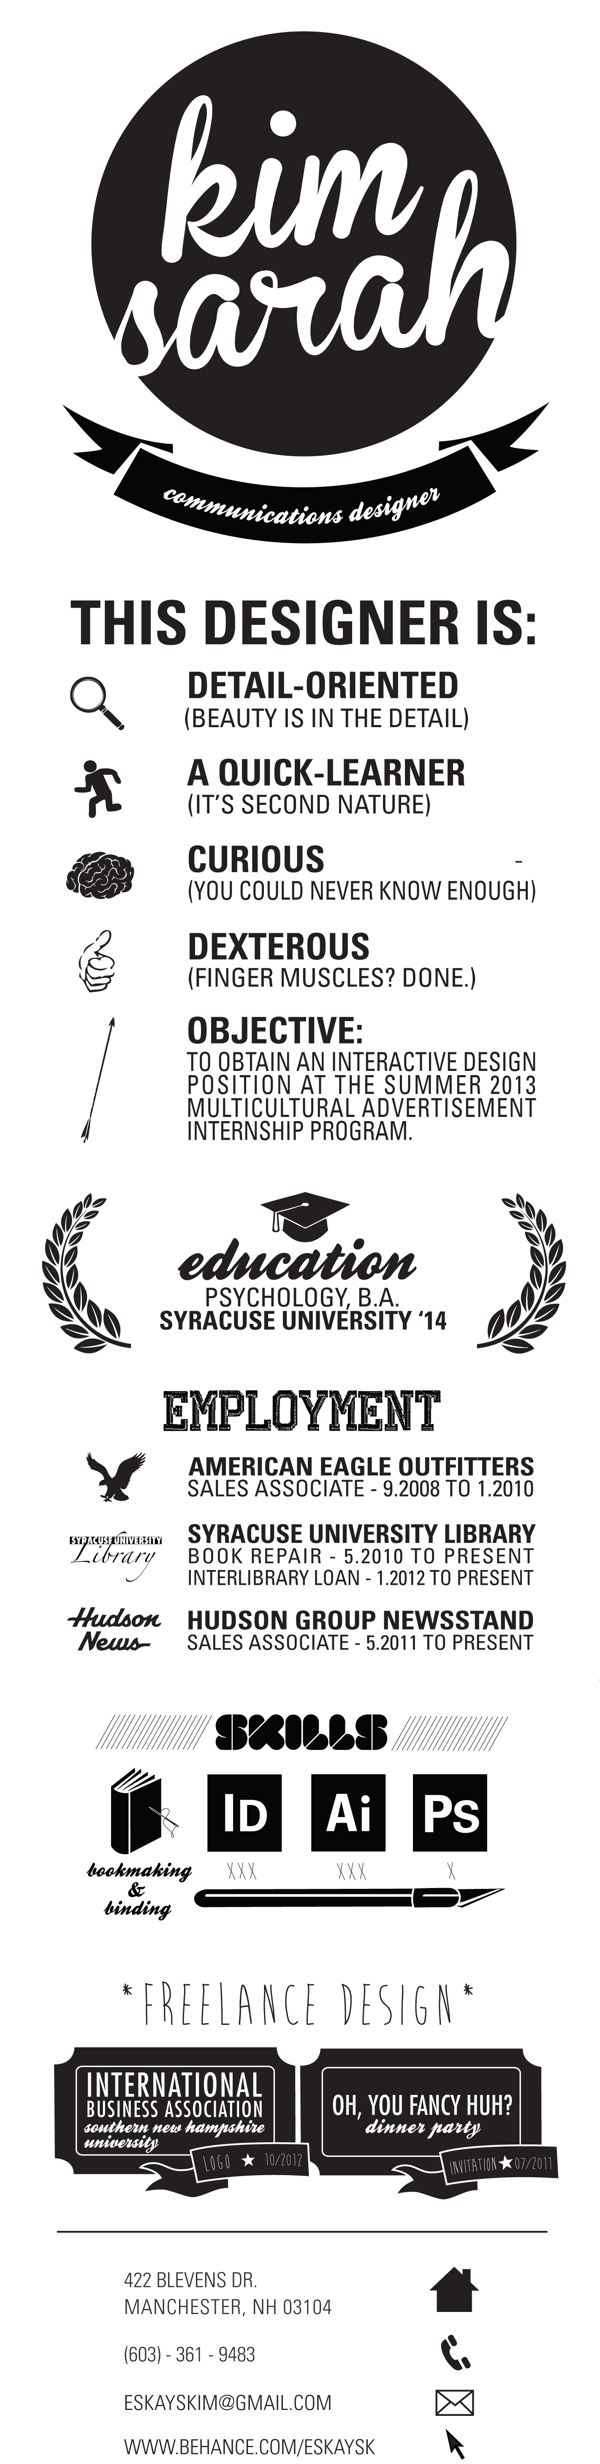 Opposenewapstandardsus  Sweet  Resume Ideas On Pinterest  Resume Resume Templates And  With Fair  Resume Ideas On Pinterest  Resume Resume Templates And Resume Styles With Delectable First Resume Sample Also Resume For Waiter In Addition Resume Rn And  Page Resume Sample As Well As Images Of A Resume Additionally Free Creative Resume Templates Download From Pinterestcom With Opposenewapstandardsus  Fair  Resume Ideas On Pinterest  Resume Resume Templates And  With Delectable  Resume Ideas On Pinterest  Resume Resume Templates And Resume Styles And Sweet First Resume Sample Also Resume For Waiter In Addition Resume Rn From Pinterestcom